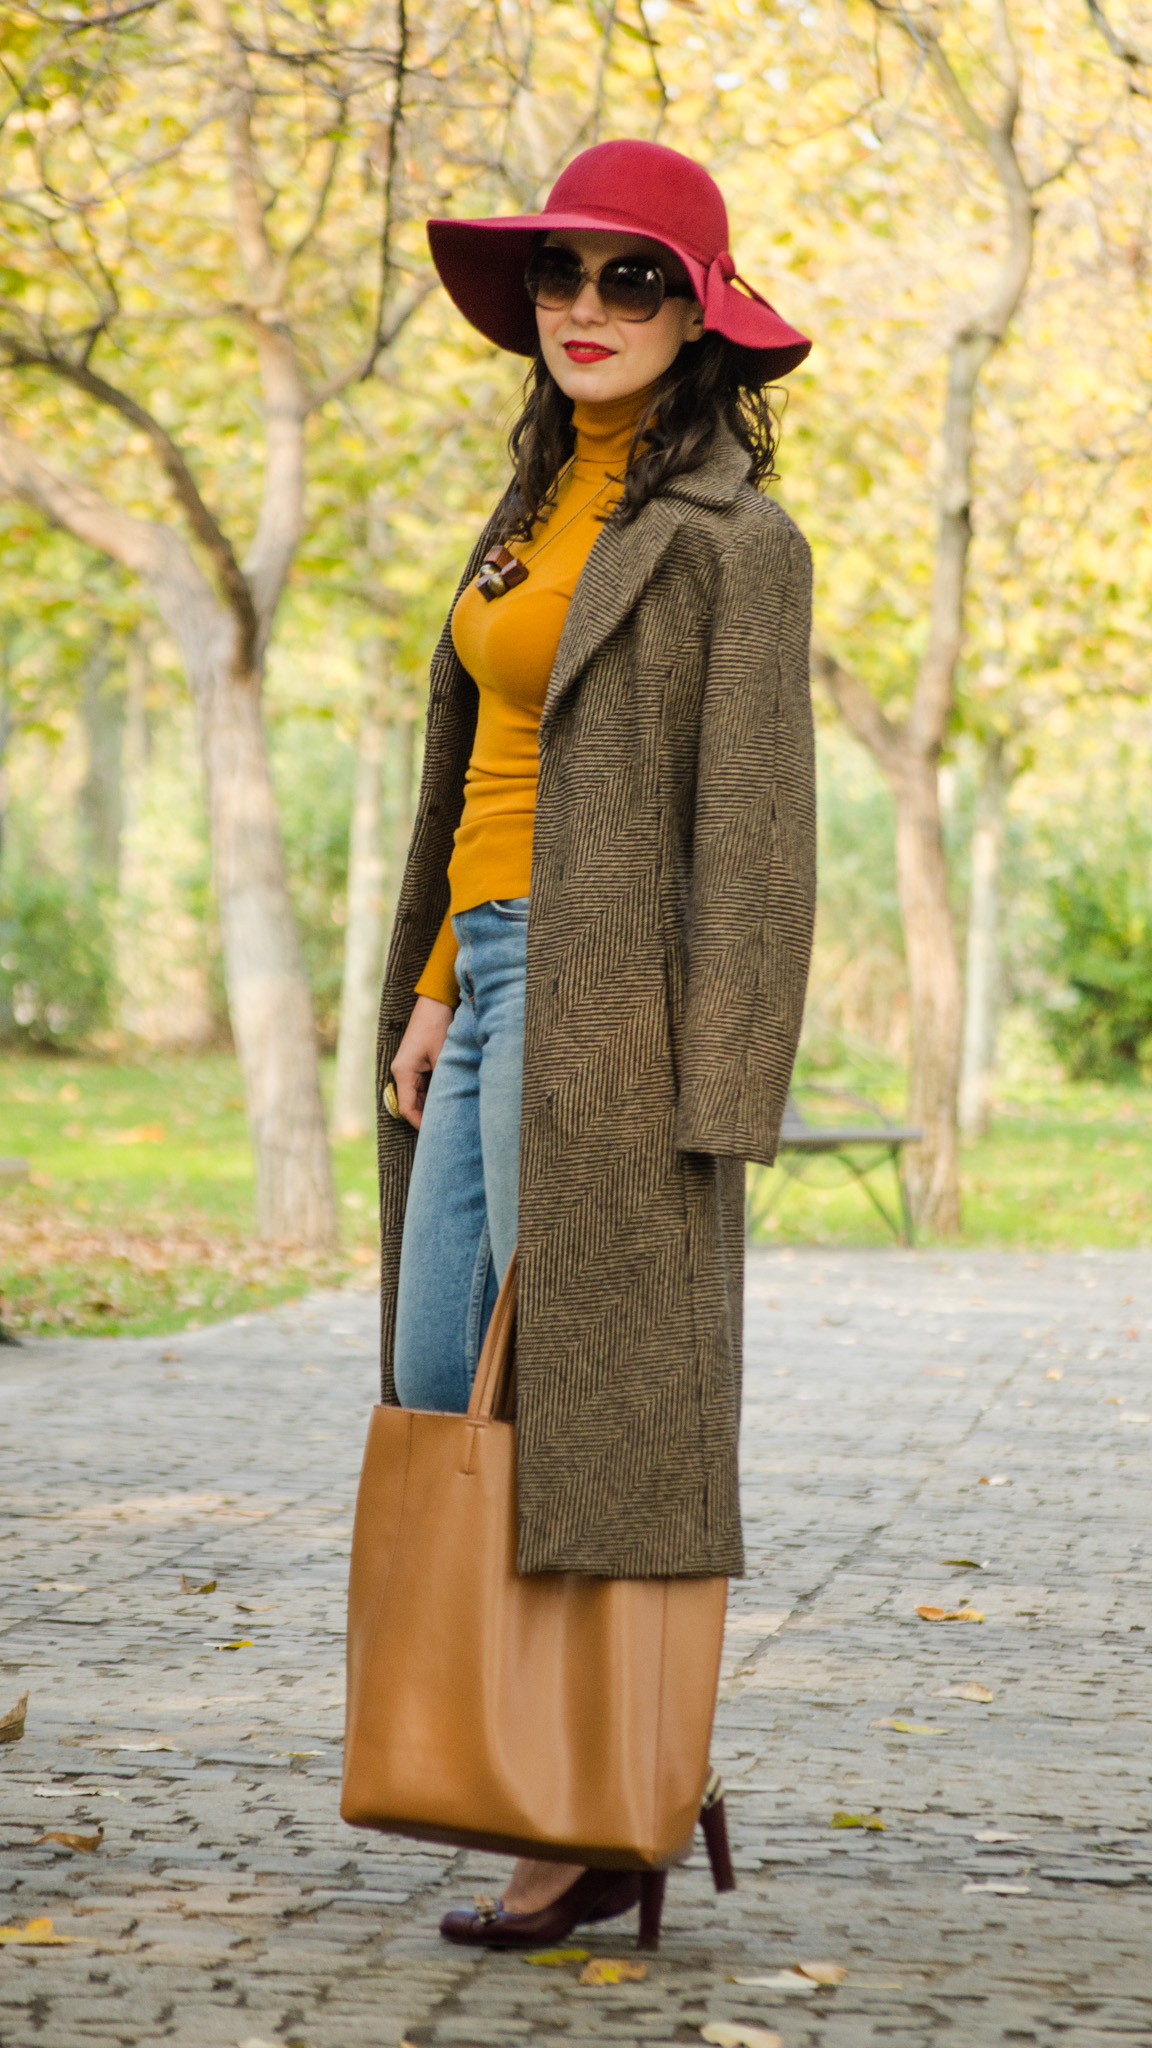 fall essential wardrobe items burgundy hat turtleneck sweater mustard brown pattern coat over-sized bag belt shoes heels autumn scenery leaves mom jeans H&M thrifted